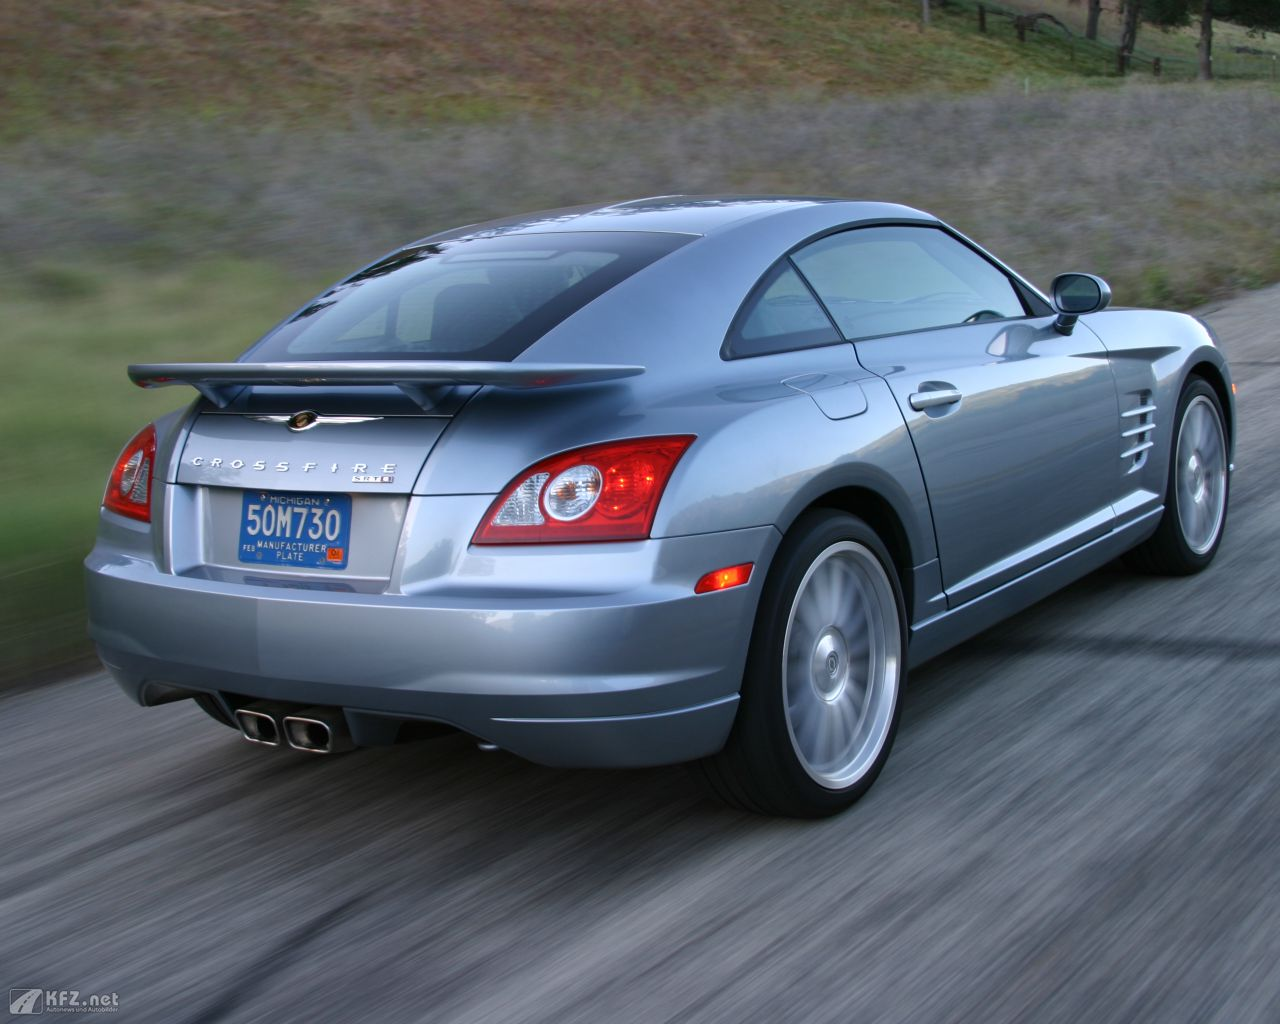 chrysler-crossfire-1280x1024-17